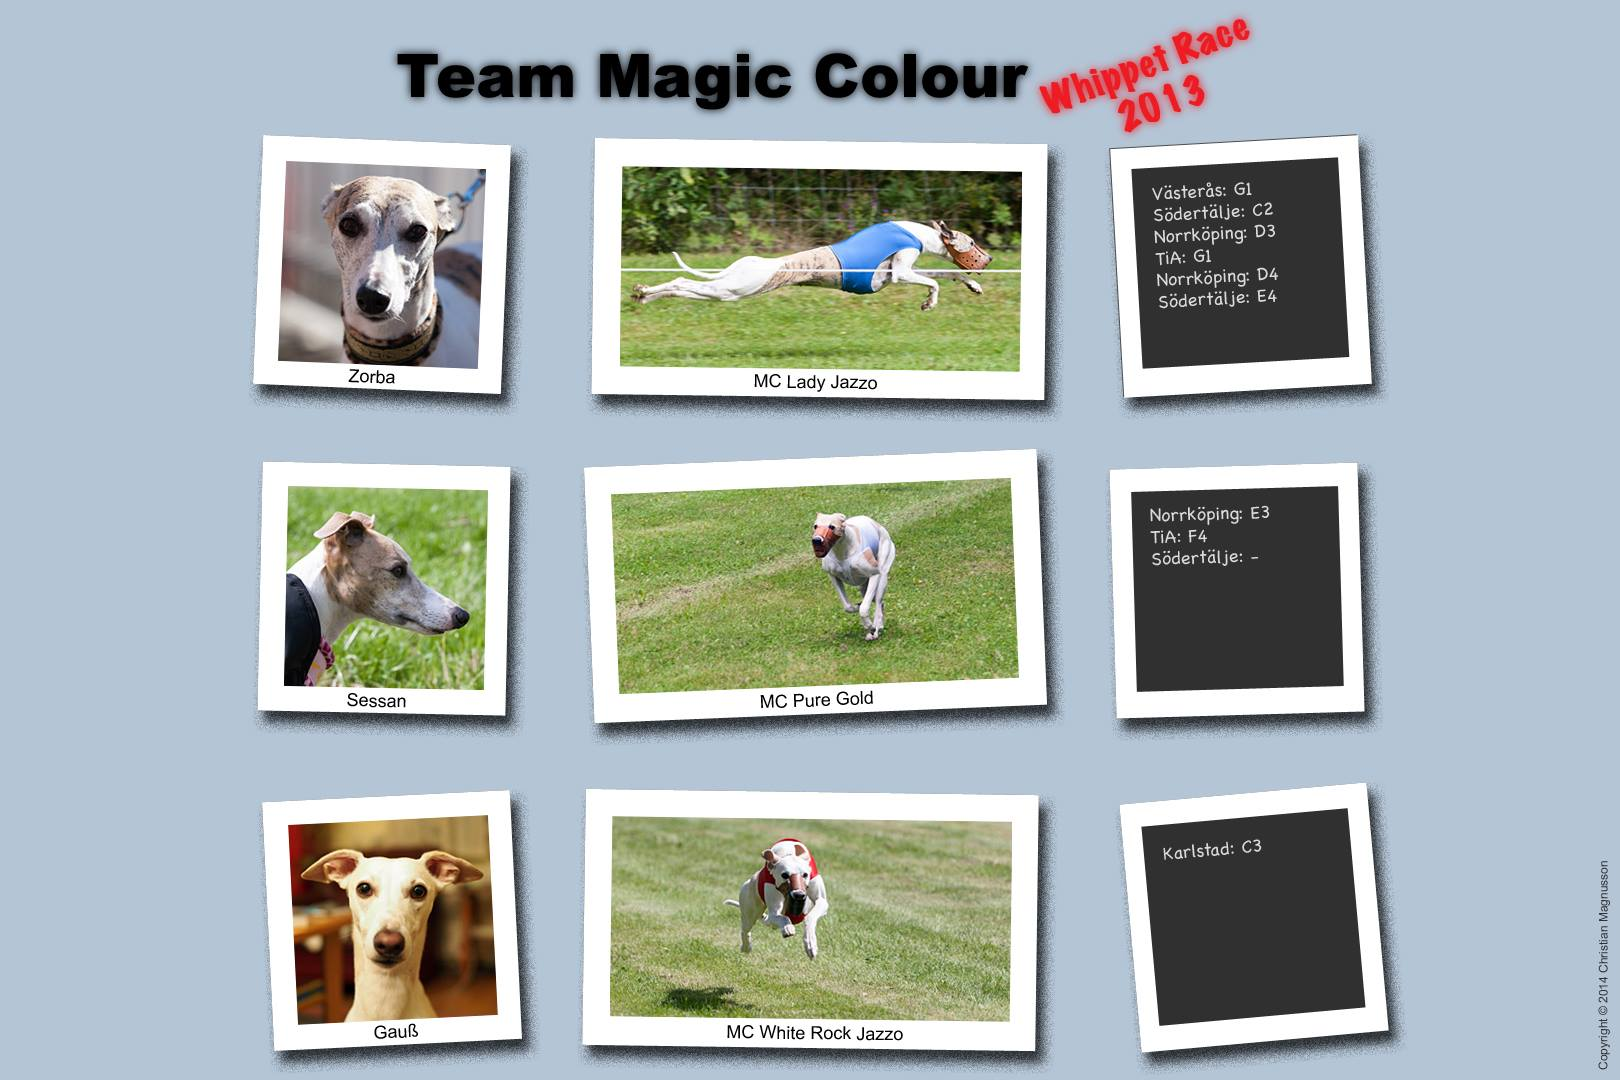 Team Magic Colour